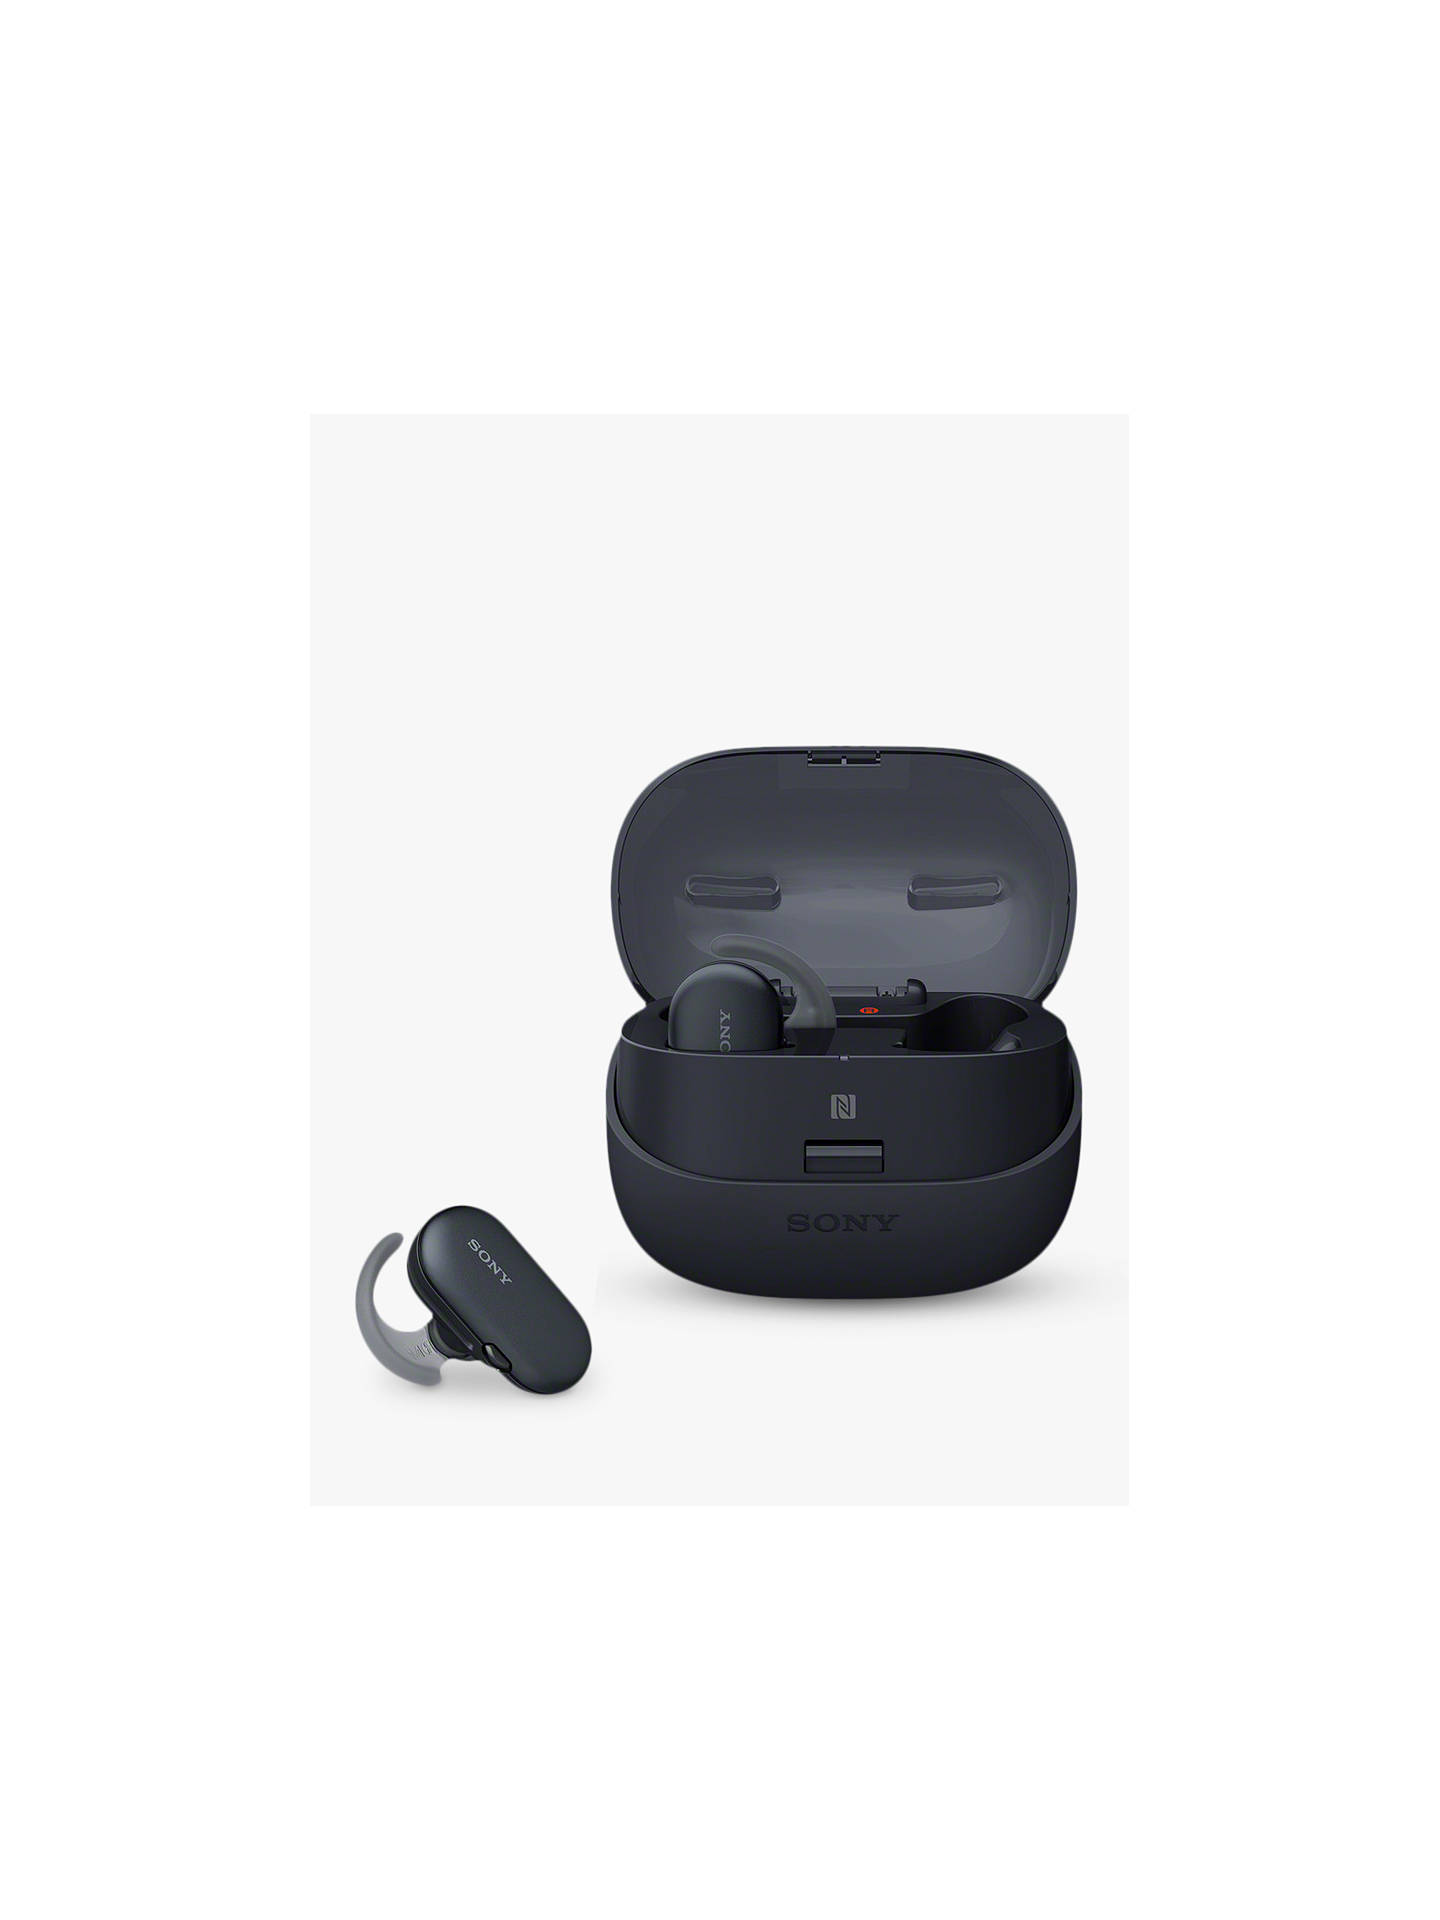 BuySony WF-SP900 True Wireless Bluetooth NFC Waterproof Sports In-Ear Headphones with 4GB Memory & Mic/Remote, Black Online at johnlewis.com